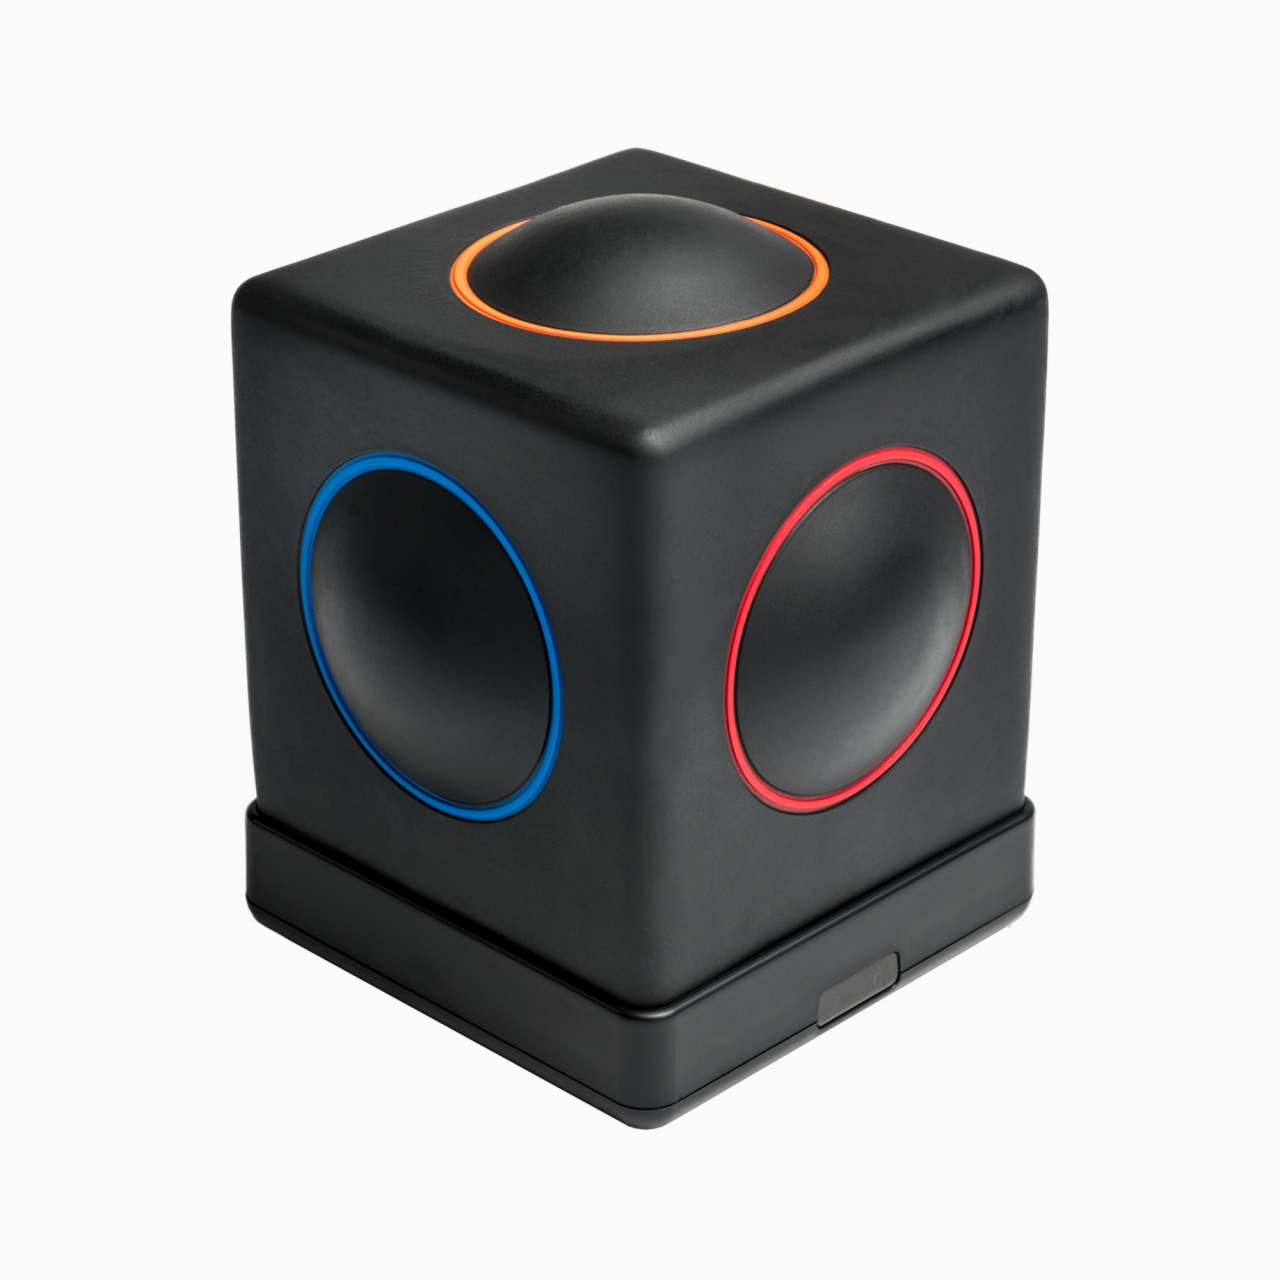 sihirli-elma-swift-playgorunds-1-5-skoogmusic-skoog.jpg